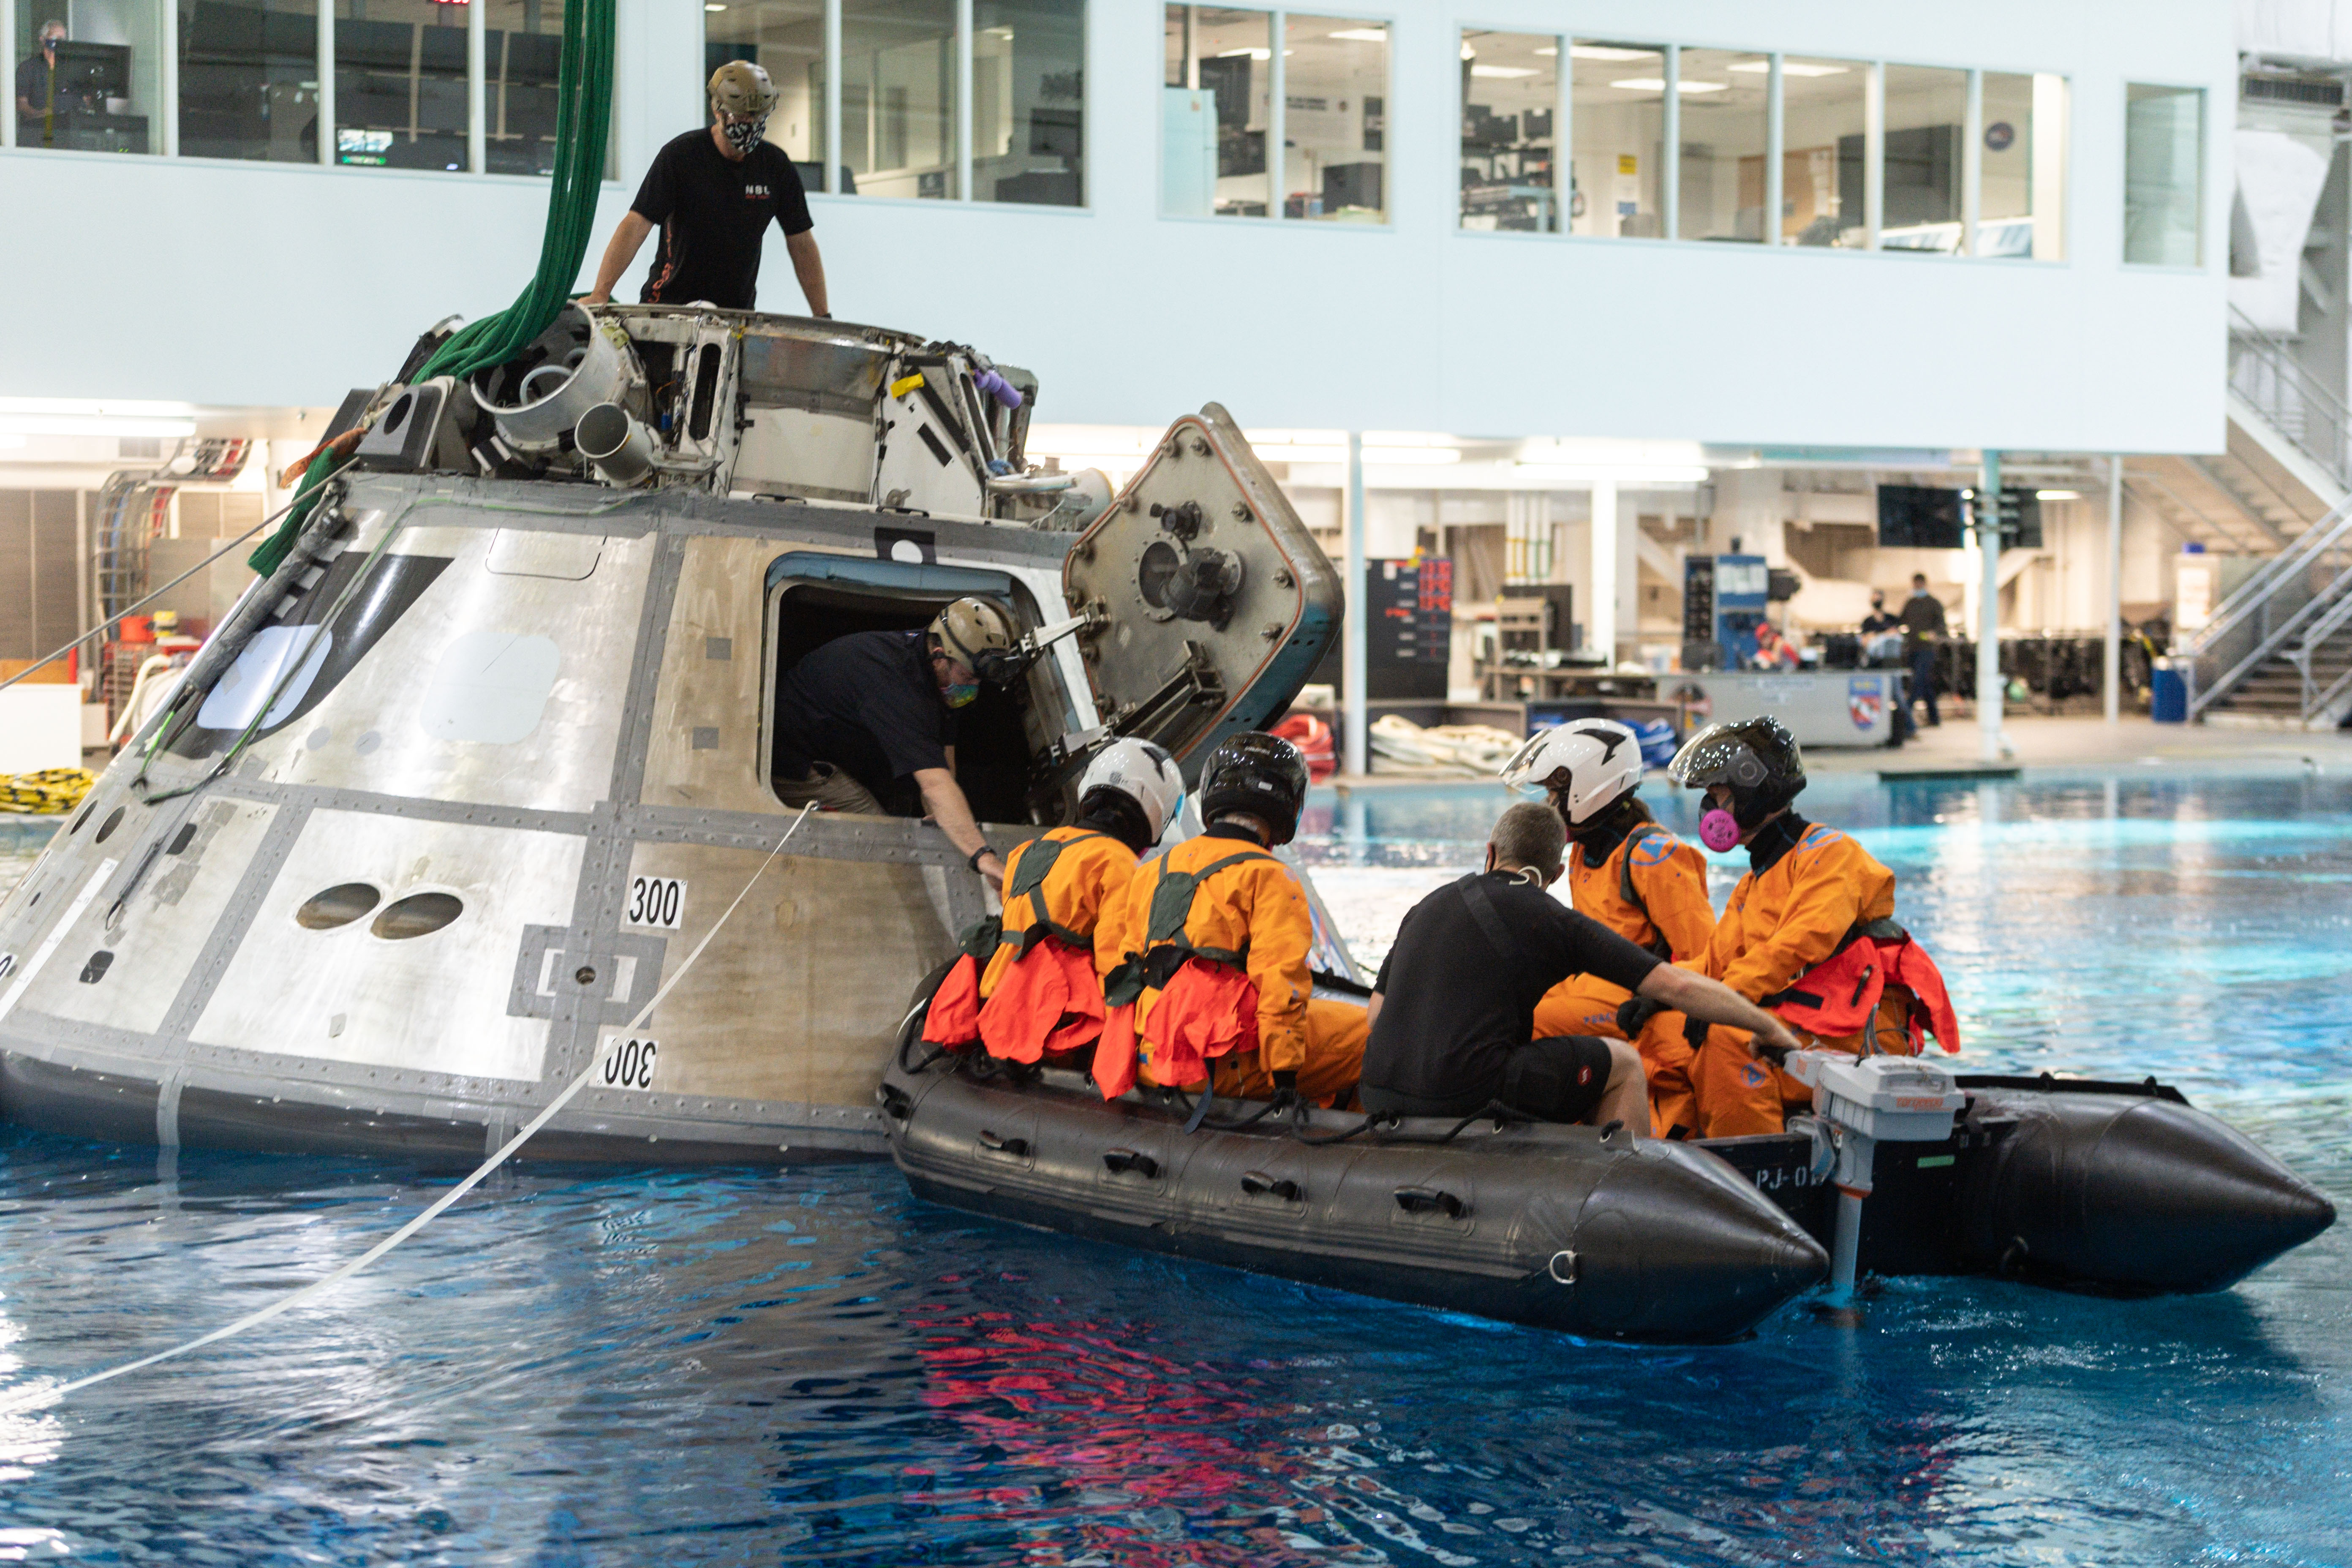 SpaceX Crew 3's Water Survival Training